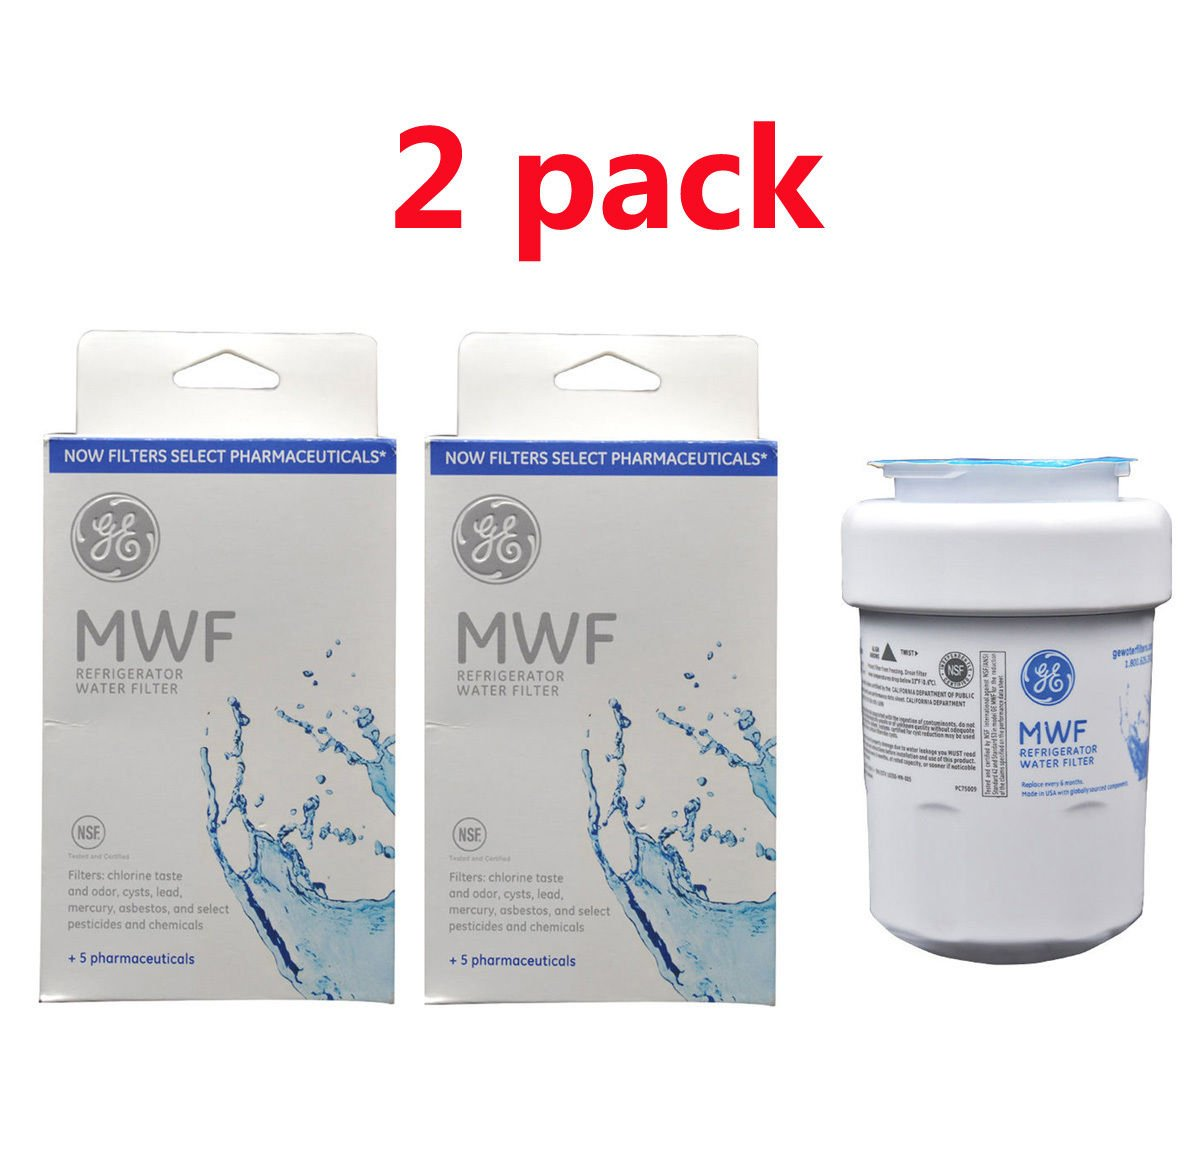 Refrigerator Water Filter Mwf Ge Mwf Refrigerator Water Filter 1 Pack Amazonca Tools Home